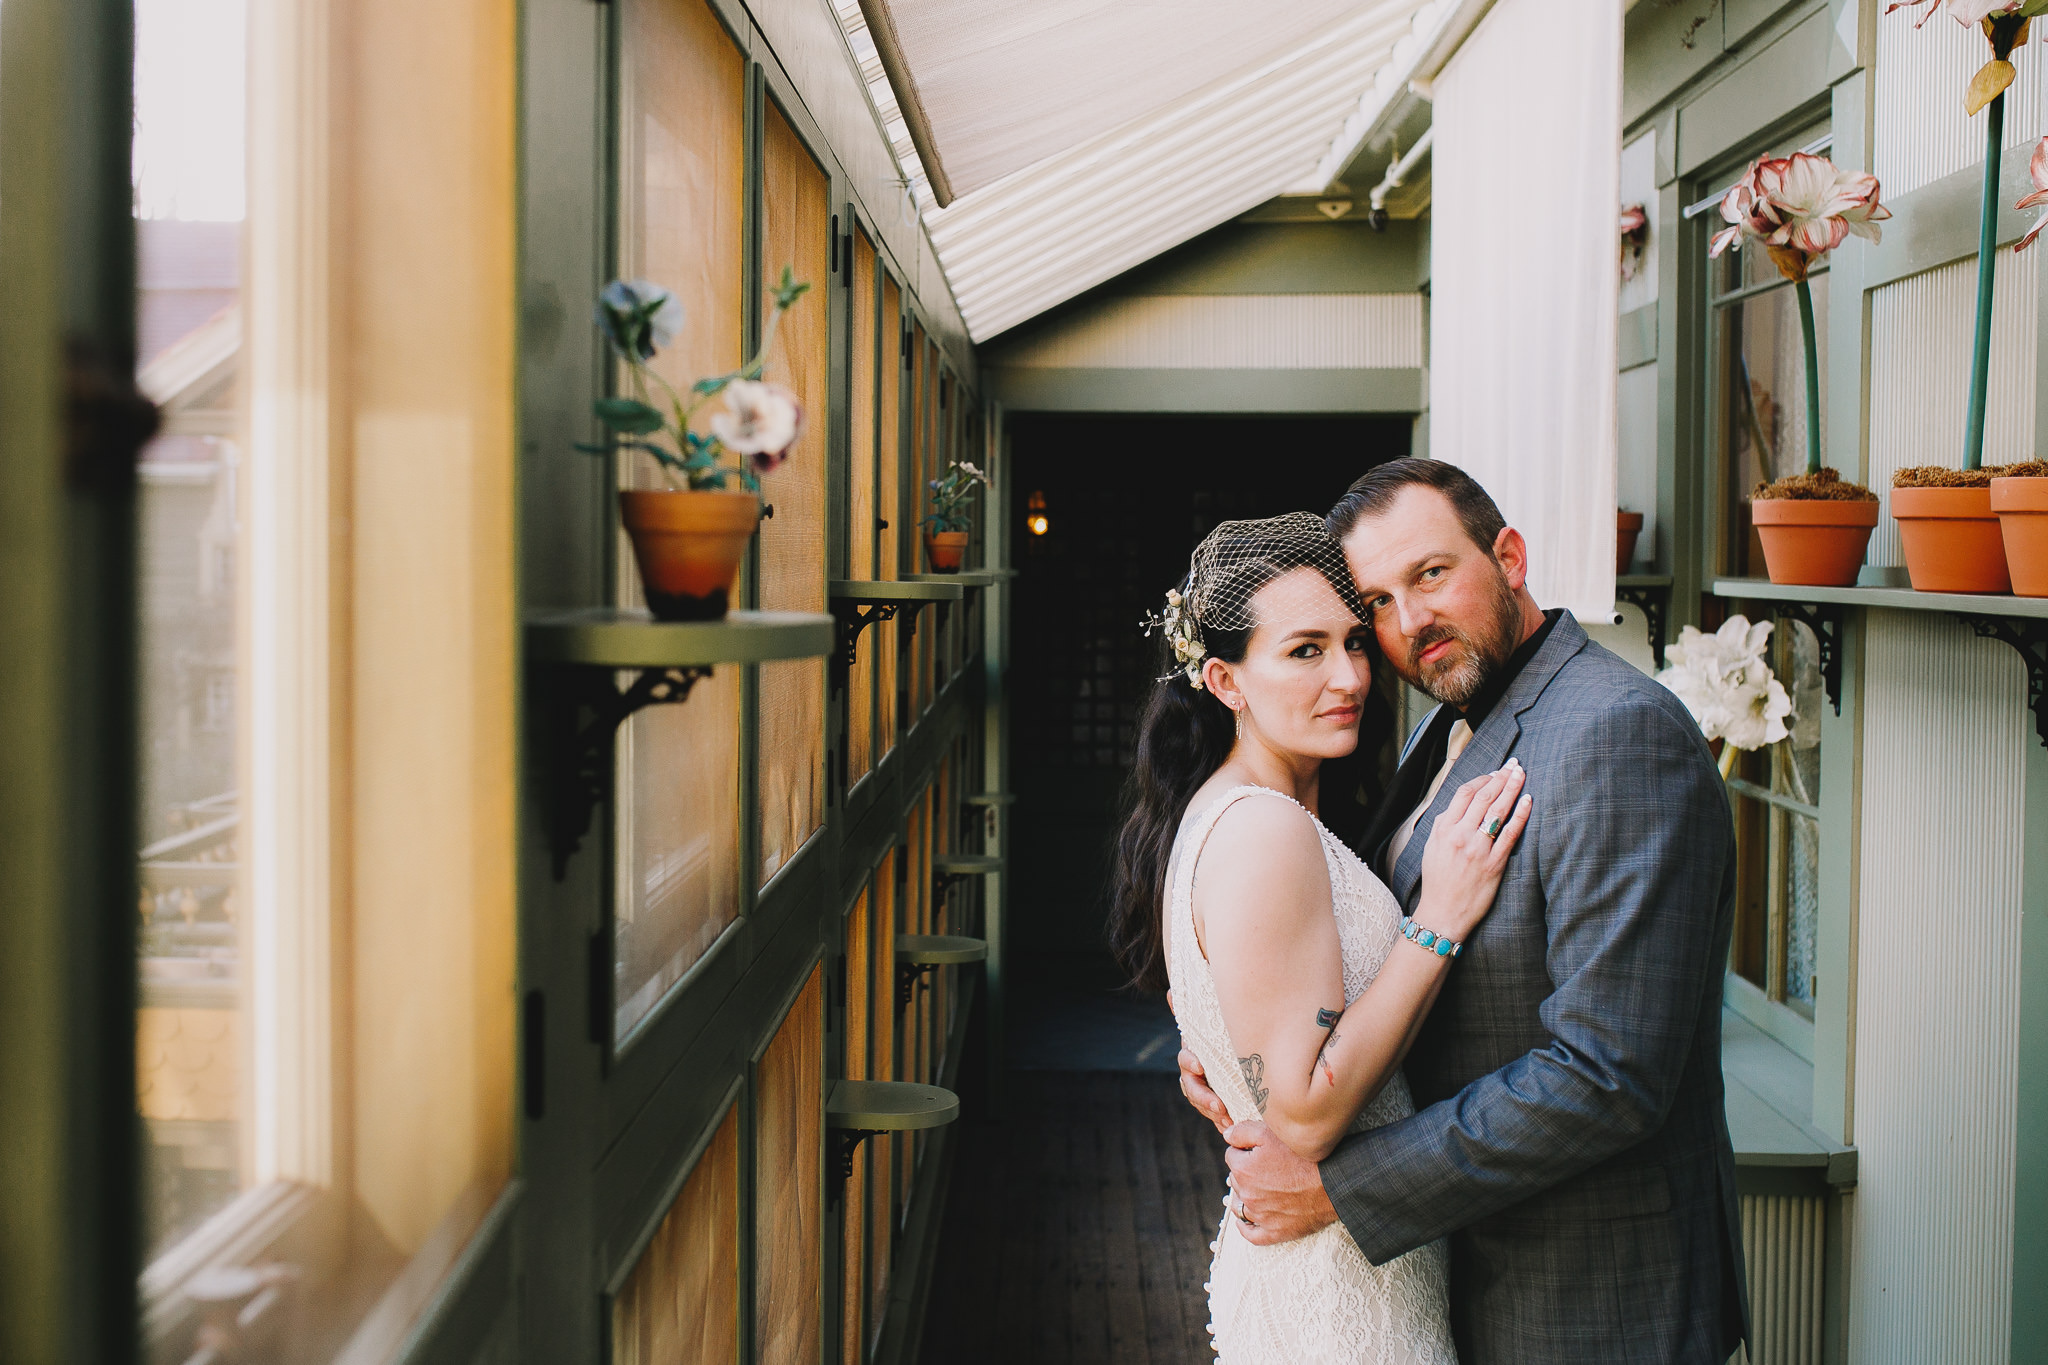 Archer Inspired Photography Sara and Aaron Winchester Mystery House NorCal San Jose California Wedding Photographer-294.jpg